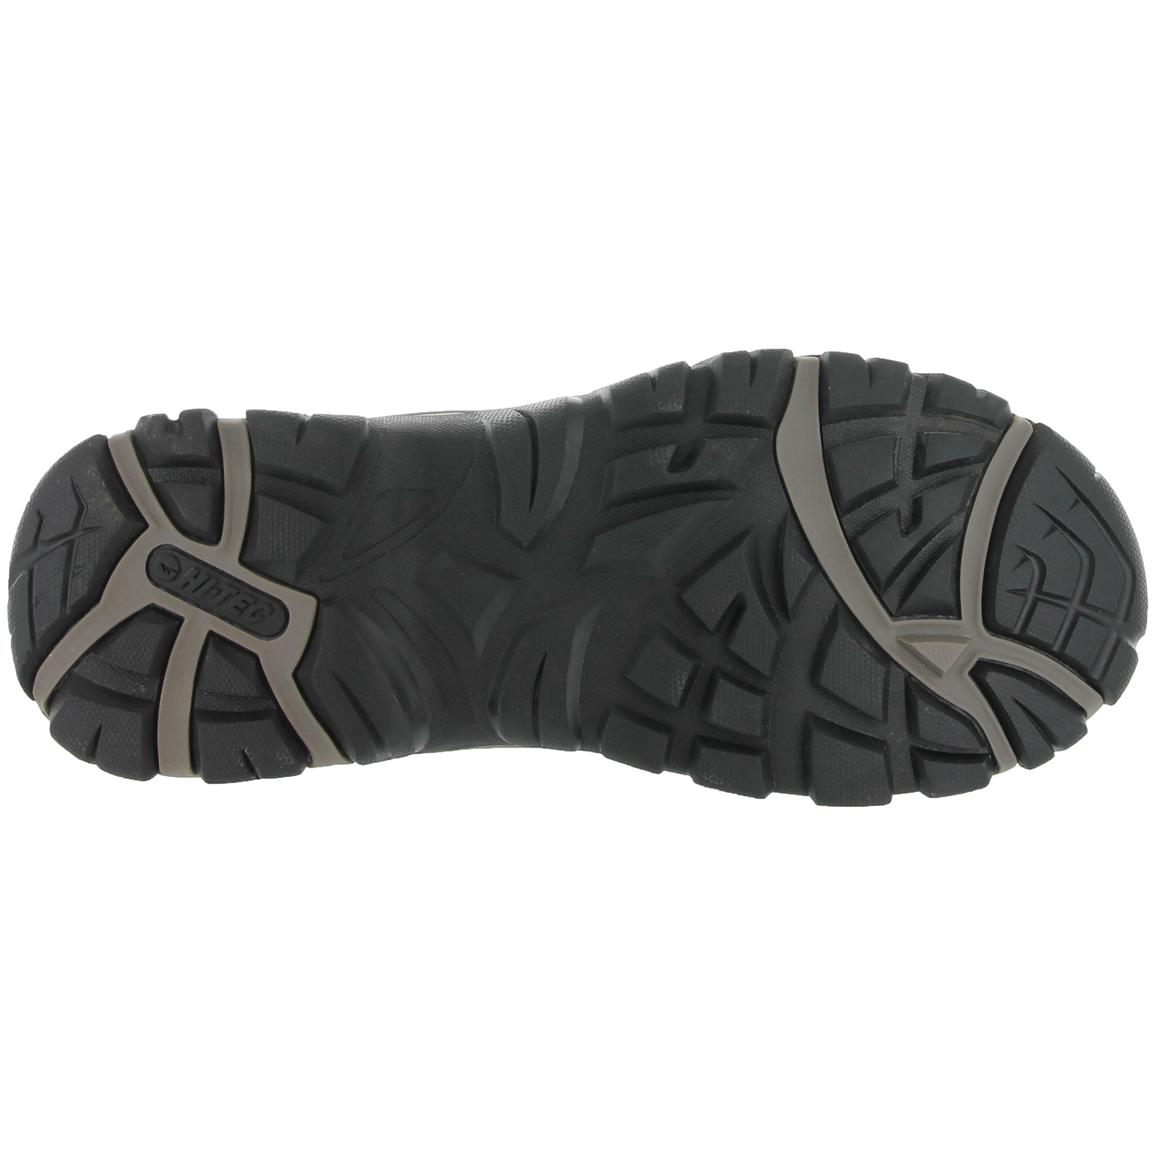 Multi-Directional Traction (MDT) rugged rubber outsole improves grip